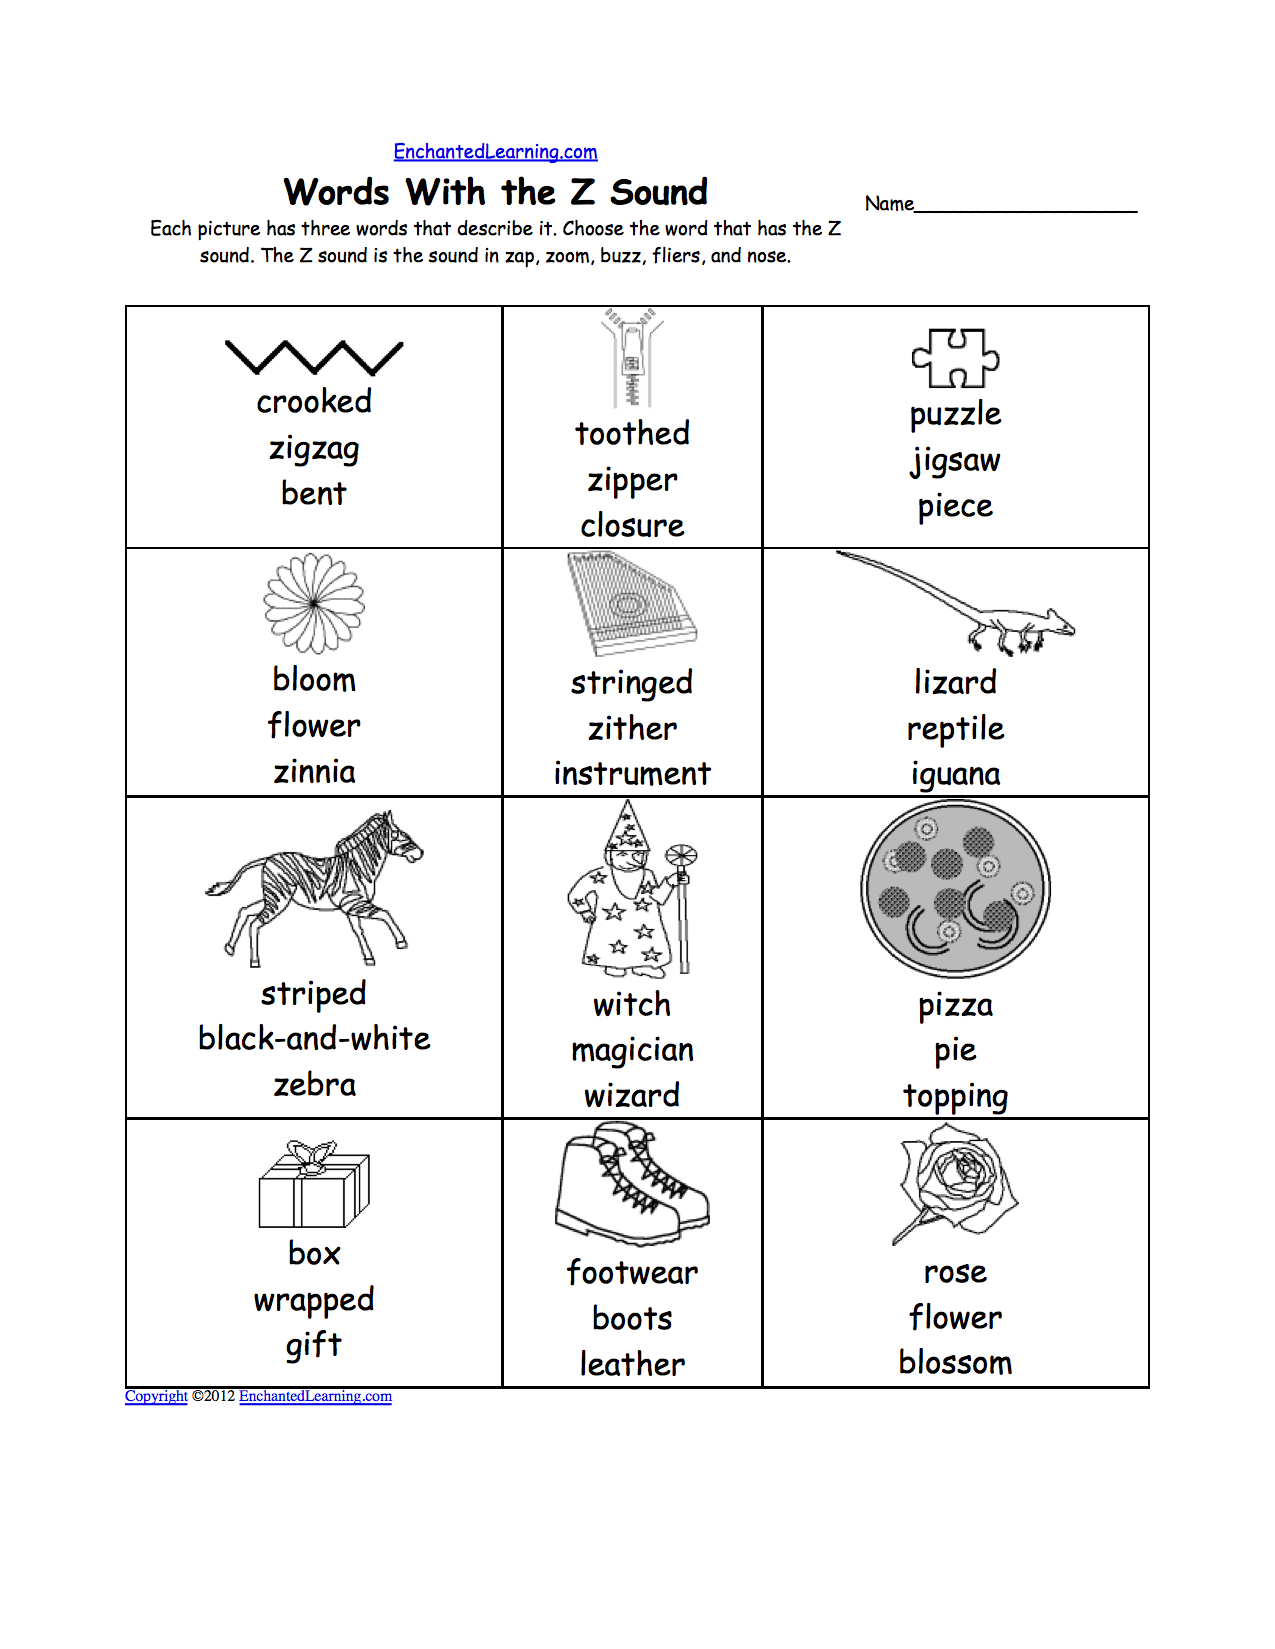 Weirdmailus  Nice Phonics Worksheets Multiple Choice Worksheets To Print  With Luxury Phonics Worksheets Multiple Choice Worksheets To Print  Enchantedlearningcom With Agreeable Identifying Fiction And Nonfiction Worksheets Also Neighborhood Worksheets For Kindergarten In Addition Worksheet On Mixtures And Number  Worksheet Preschool As Well As Short Vowel Reading Worksheets Additionally Spreadsheet Worksheets For Students From Enchantedlearningcom With Weirdmailus  Luxury Phonics Worksheets Multiple Choice Worksheets To Print  With Agreeable Phonics Worksheets Multiple Choice Worksheets To Print  Enchantedlearningcom And Nice Identifying Fiction And Nonfiction Worksheets Also Neighborhood Worksheets For Kindergarten In Addition Worksheet On Mixtures From Enchantedlearningcom